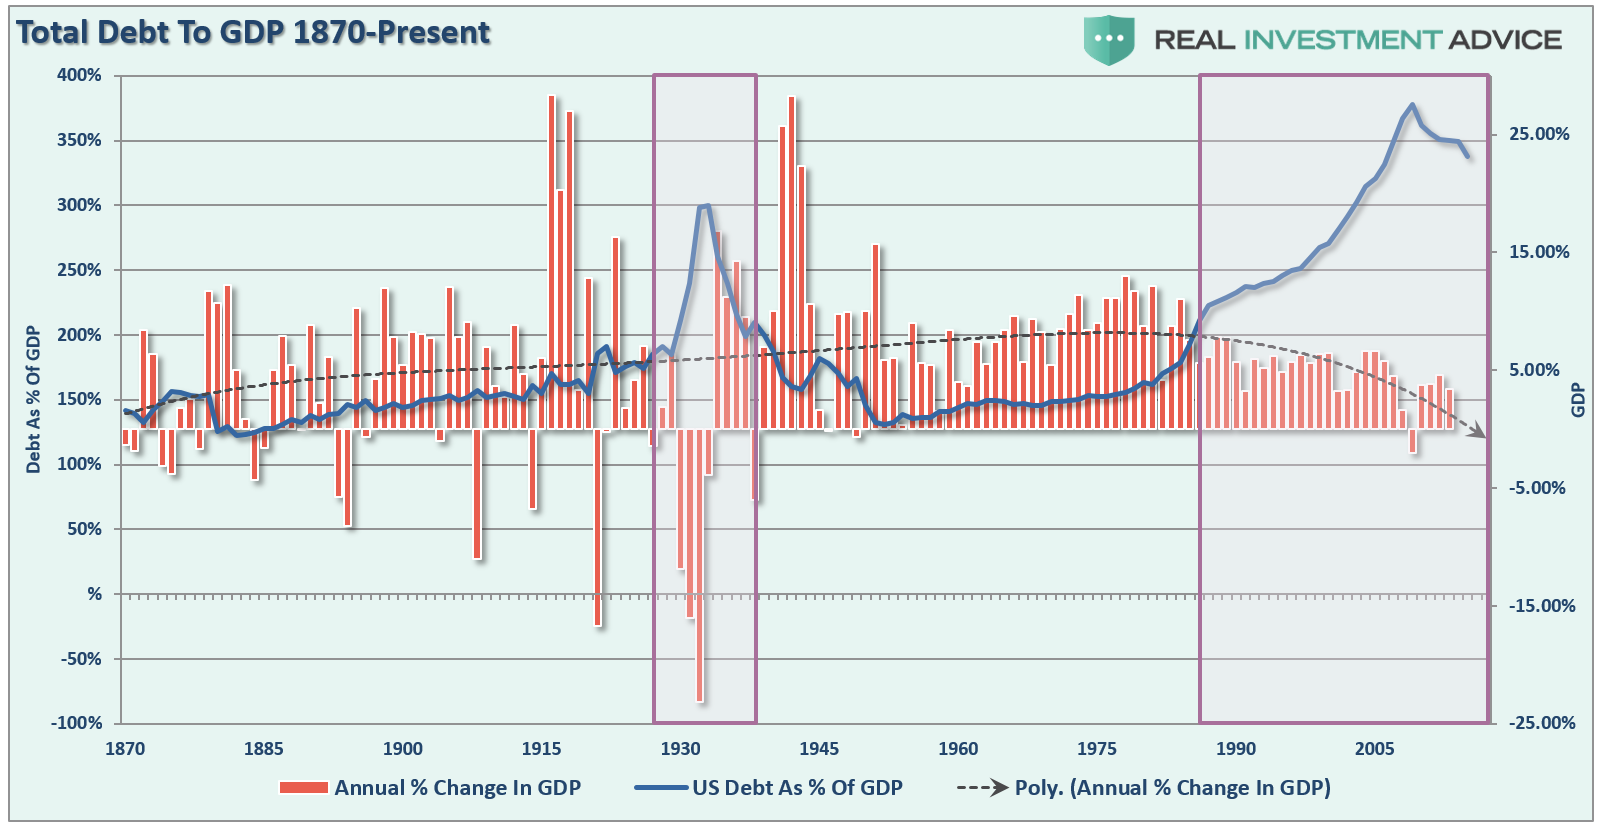 Economic Growth And Debt